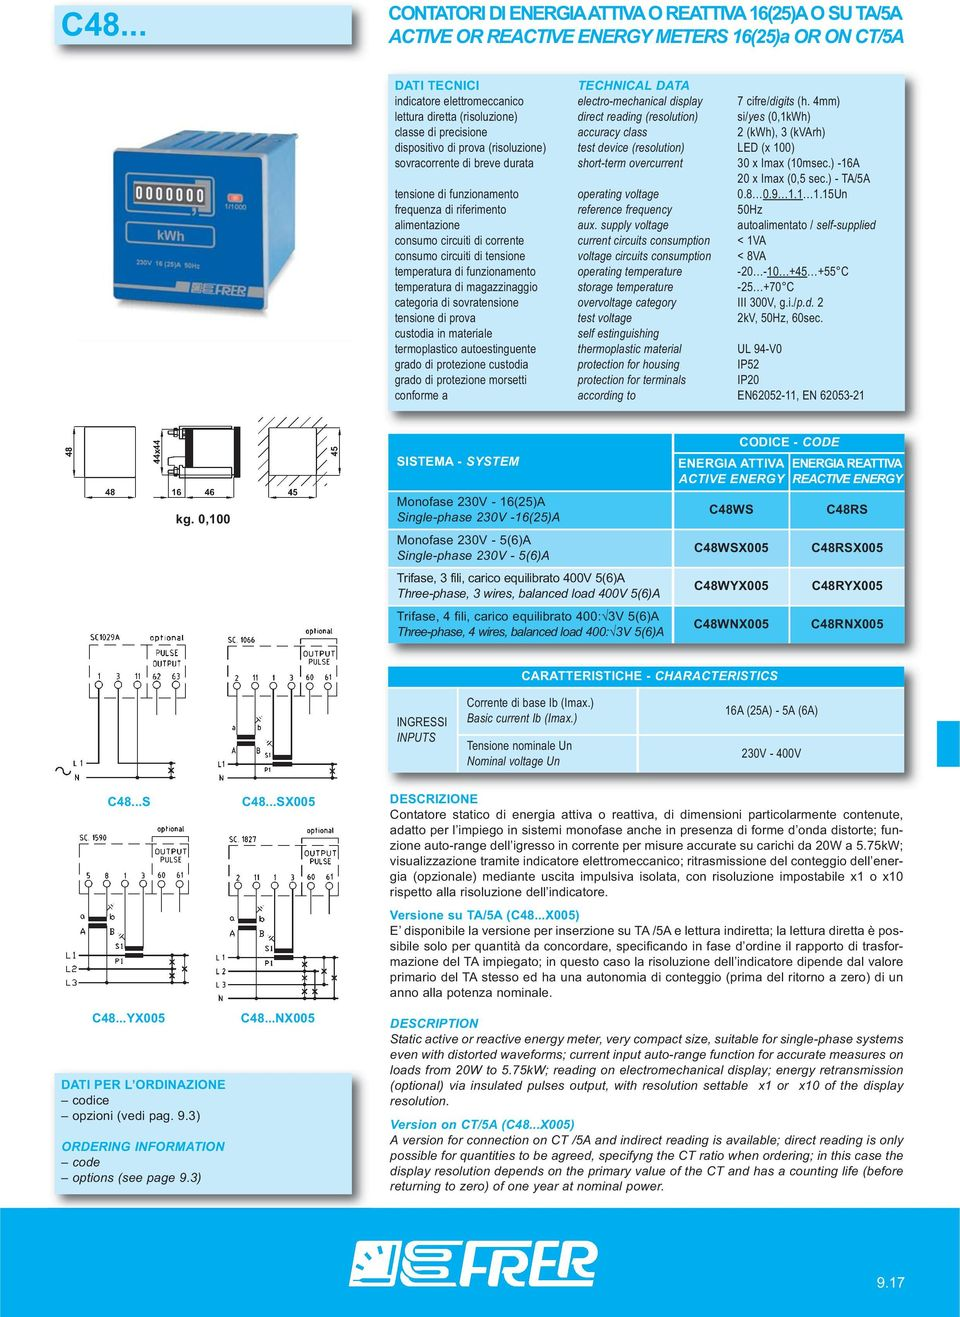 (x 100) sovracorrente di breve durata short-term overcurrent 30 x Imax (10msec.) -16A 20 x Imax (0,5 sec.) - TA/5A tensione di funzionamento operating voltage 0.8 0.9 1.1 1.